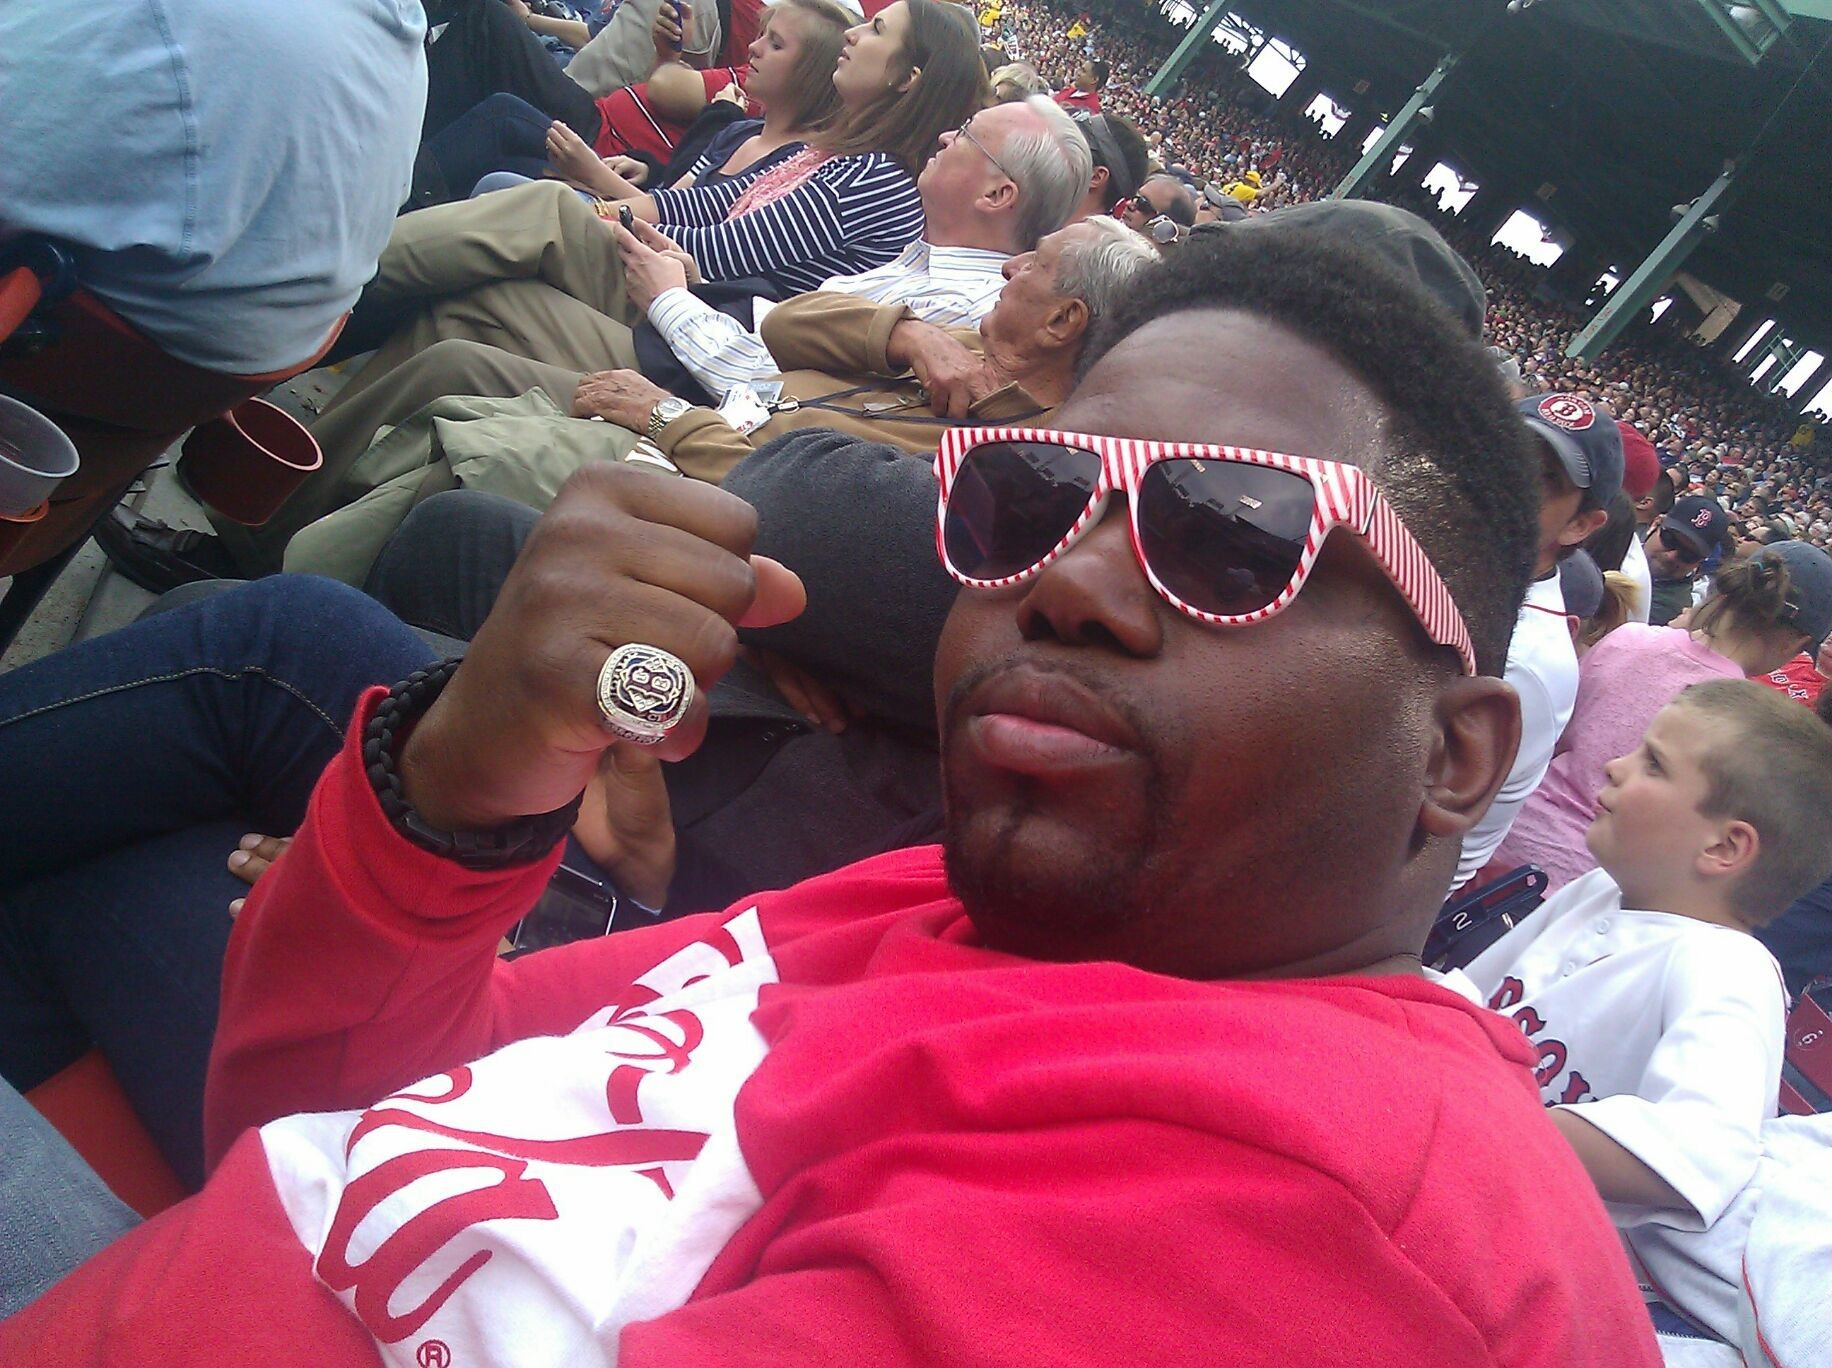 I rep Boston to the fullest!